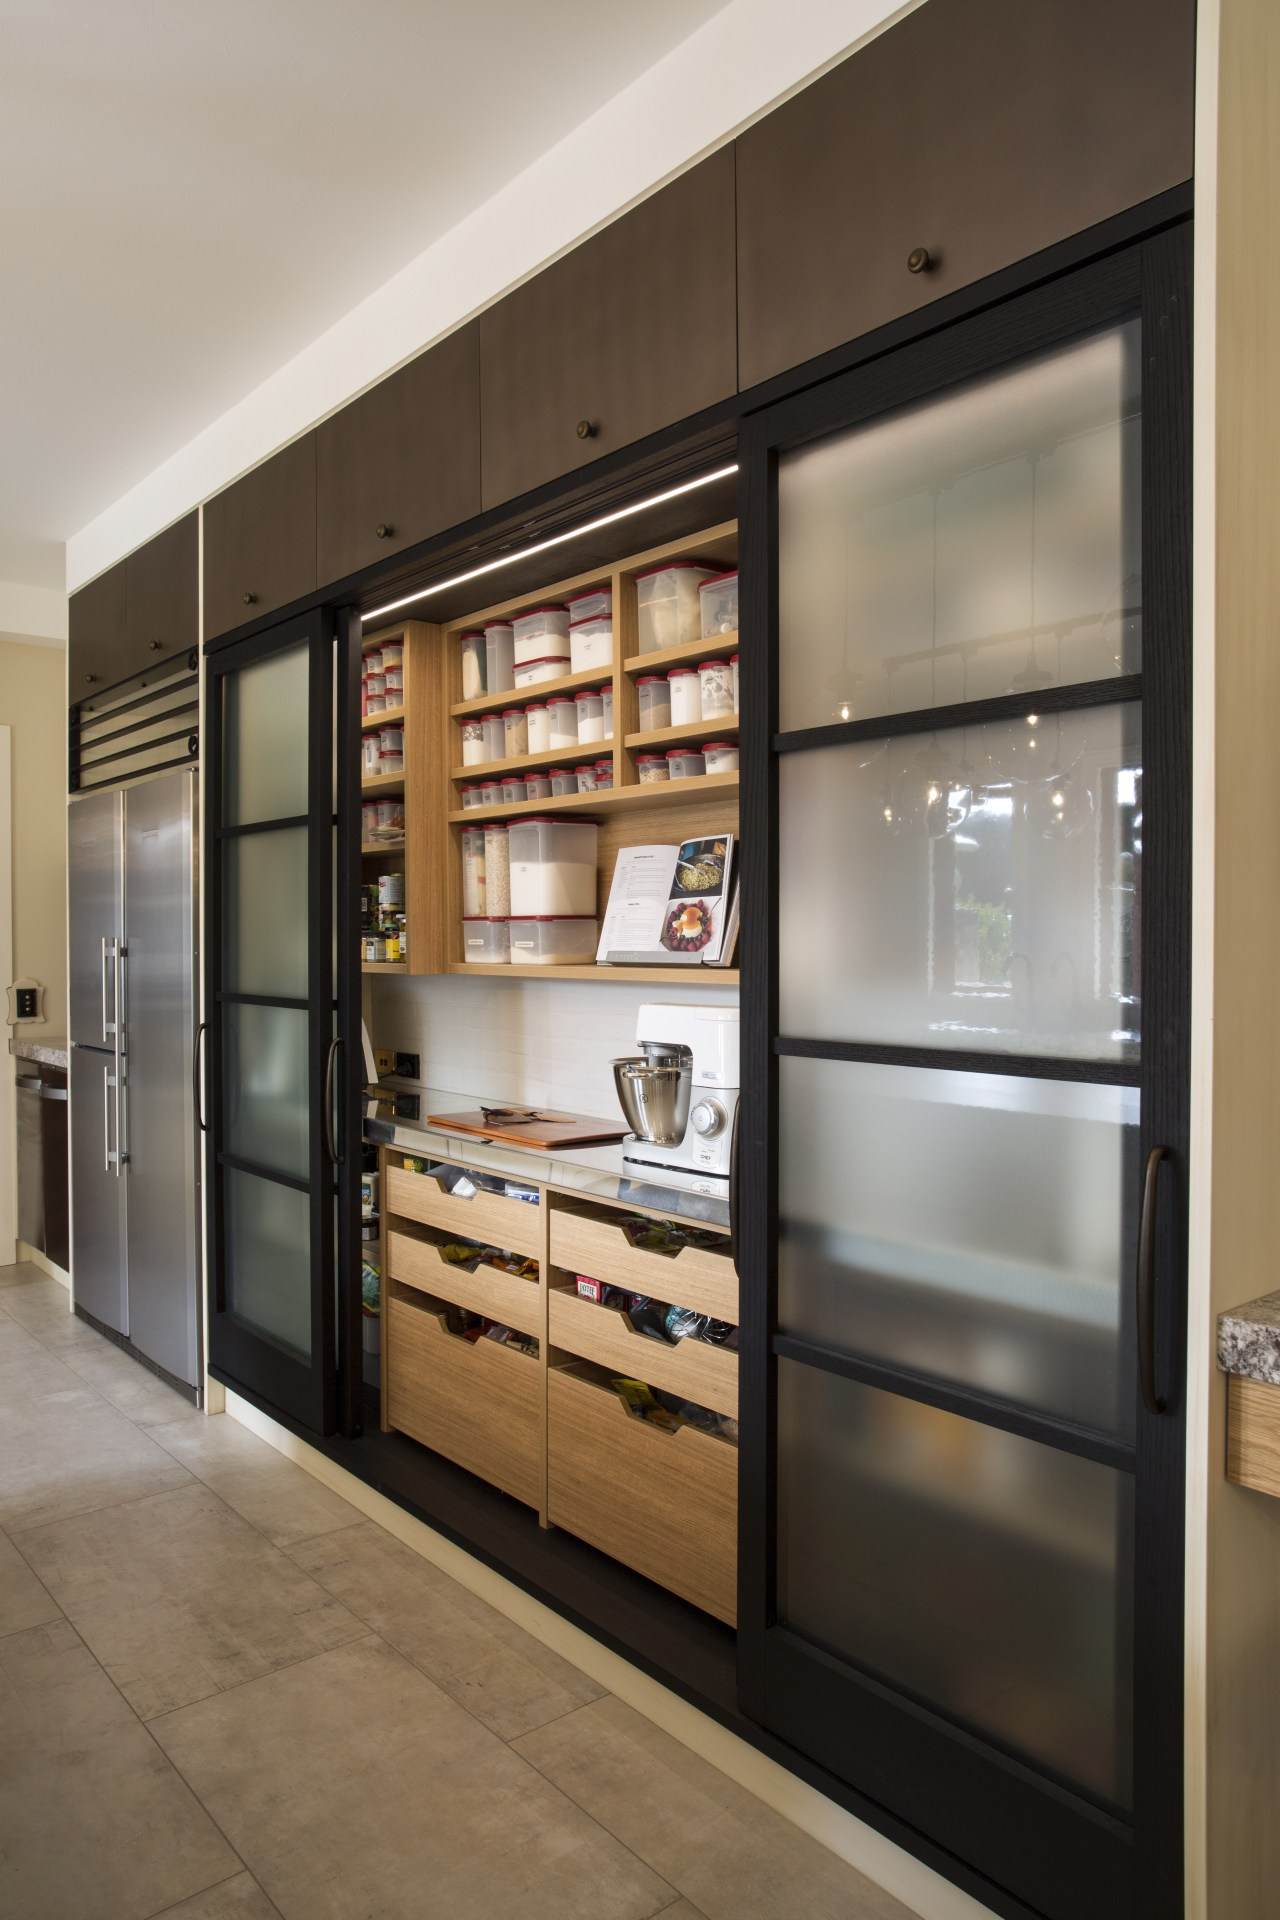 The pantry door frames and large flagstone-like floor cabinetry, display case, furniture, interior design, shelving, gray, brown, black